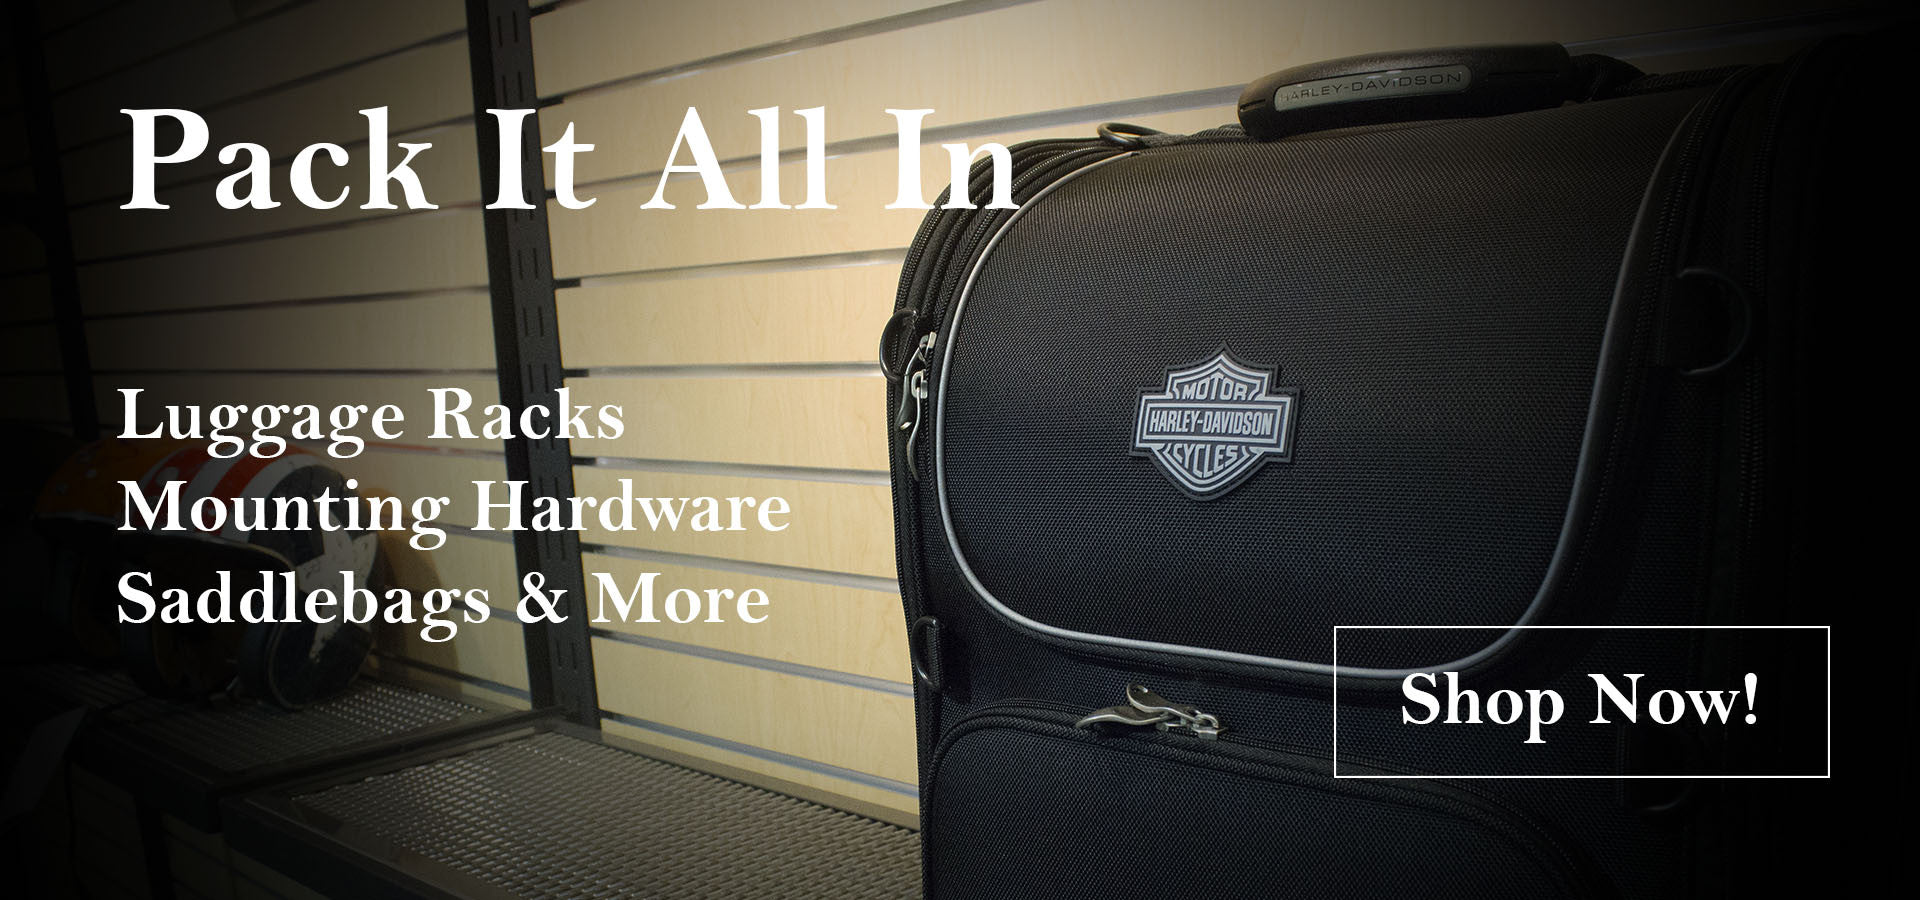 Pack It All In: Luggage Racks, Mounting Hardward, Saddlebags, and More